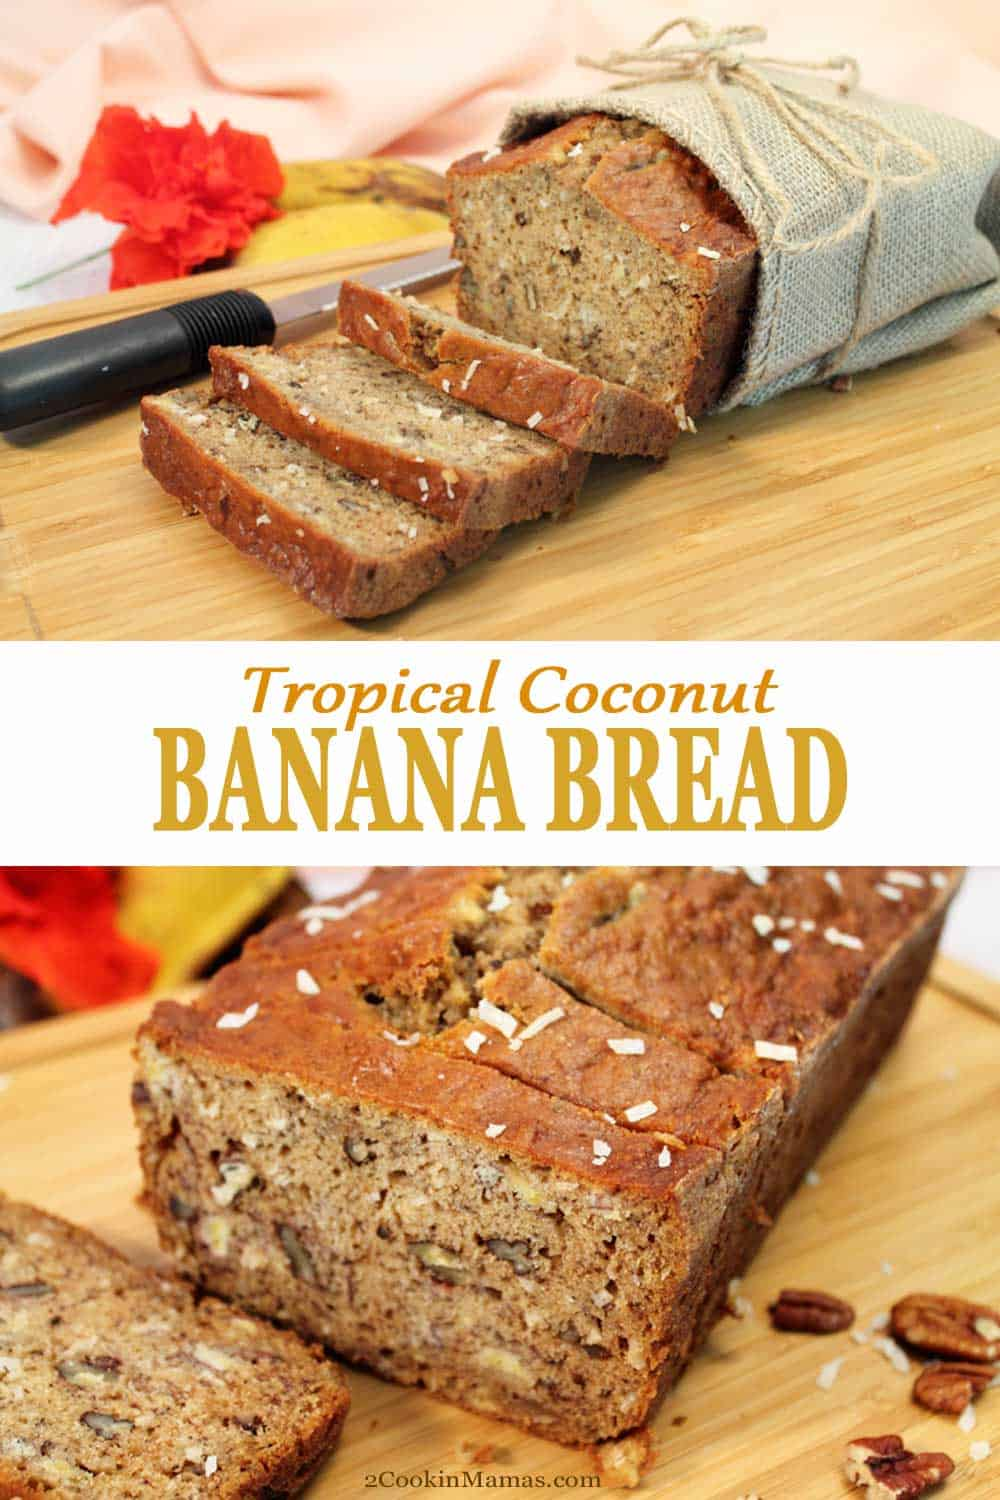 Tropical Coconut Banana Bread | 2 Cookin Mamas Tropical Coconut Banana Bread brings all the taste of the tropics to your breakfast table. A quick bread that's rich with the flavors of bananas, rum & coconut. #quickbread #bananabread #bananas #baking #recipe #breakfast #easy